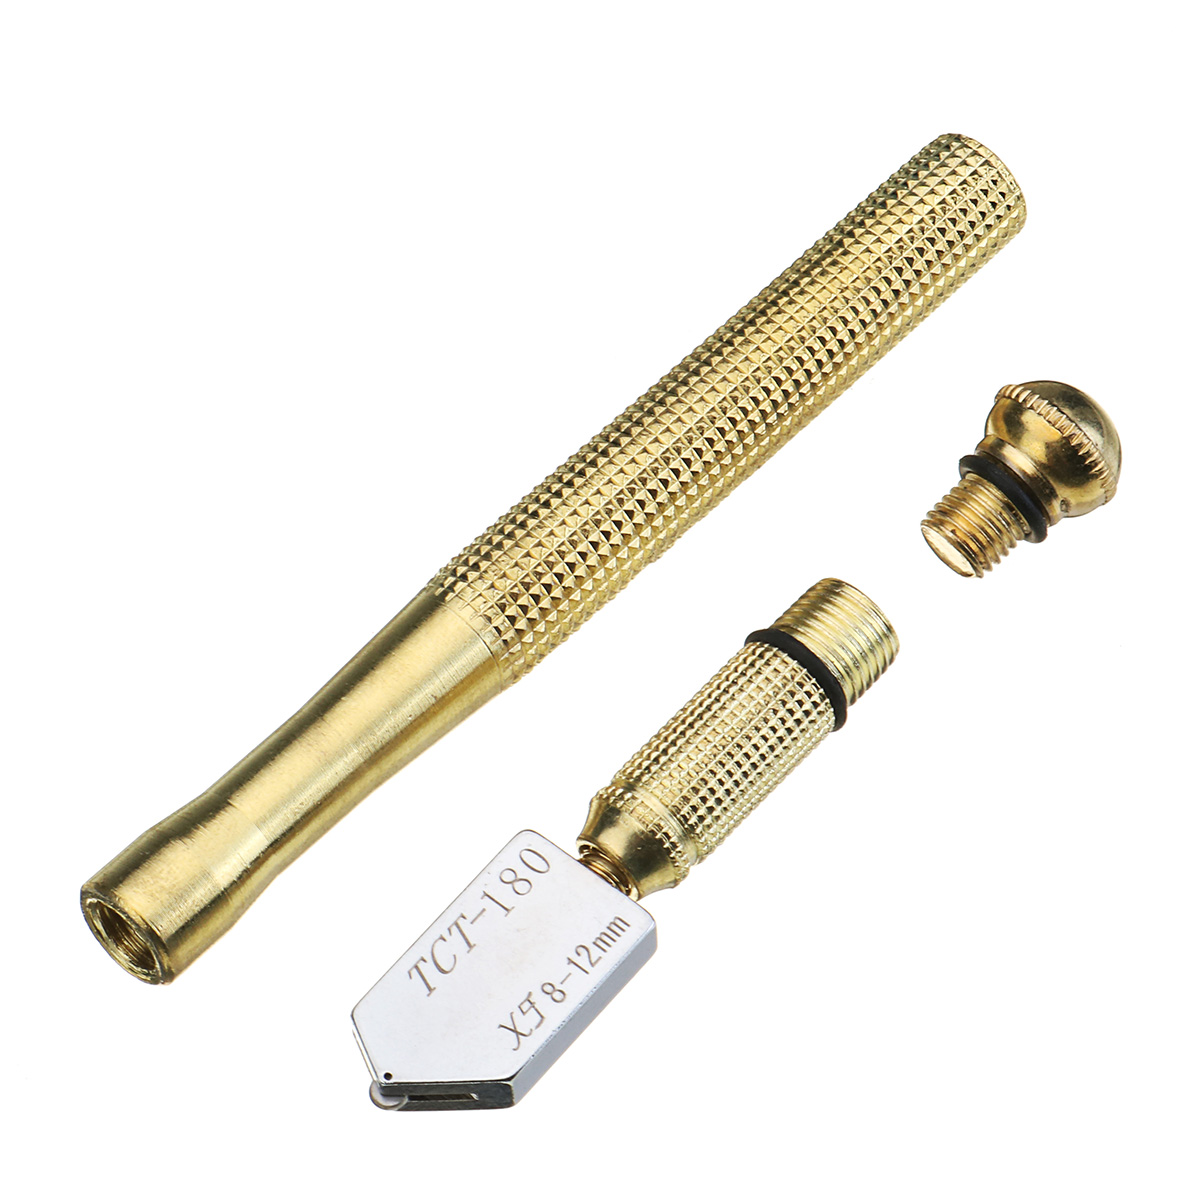 17mm Metal Handle Straight Head Oil Cutter Glass Cutter Oil Feed Glass Ceramic Tile Cutter